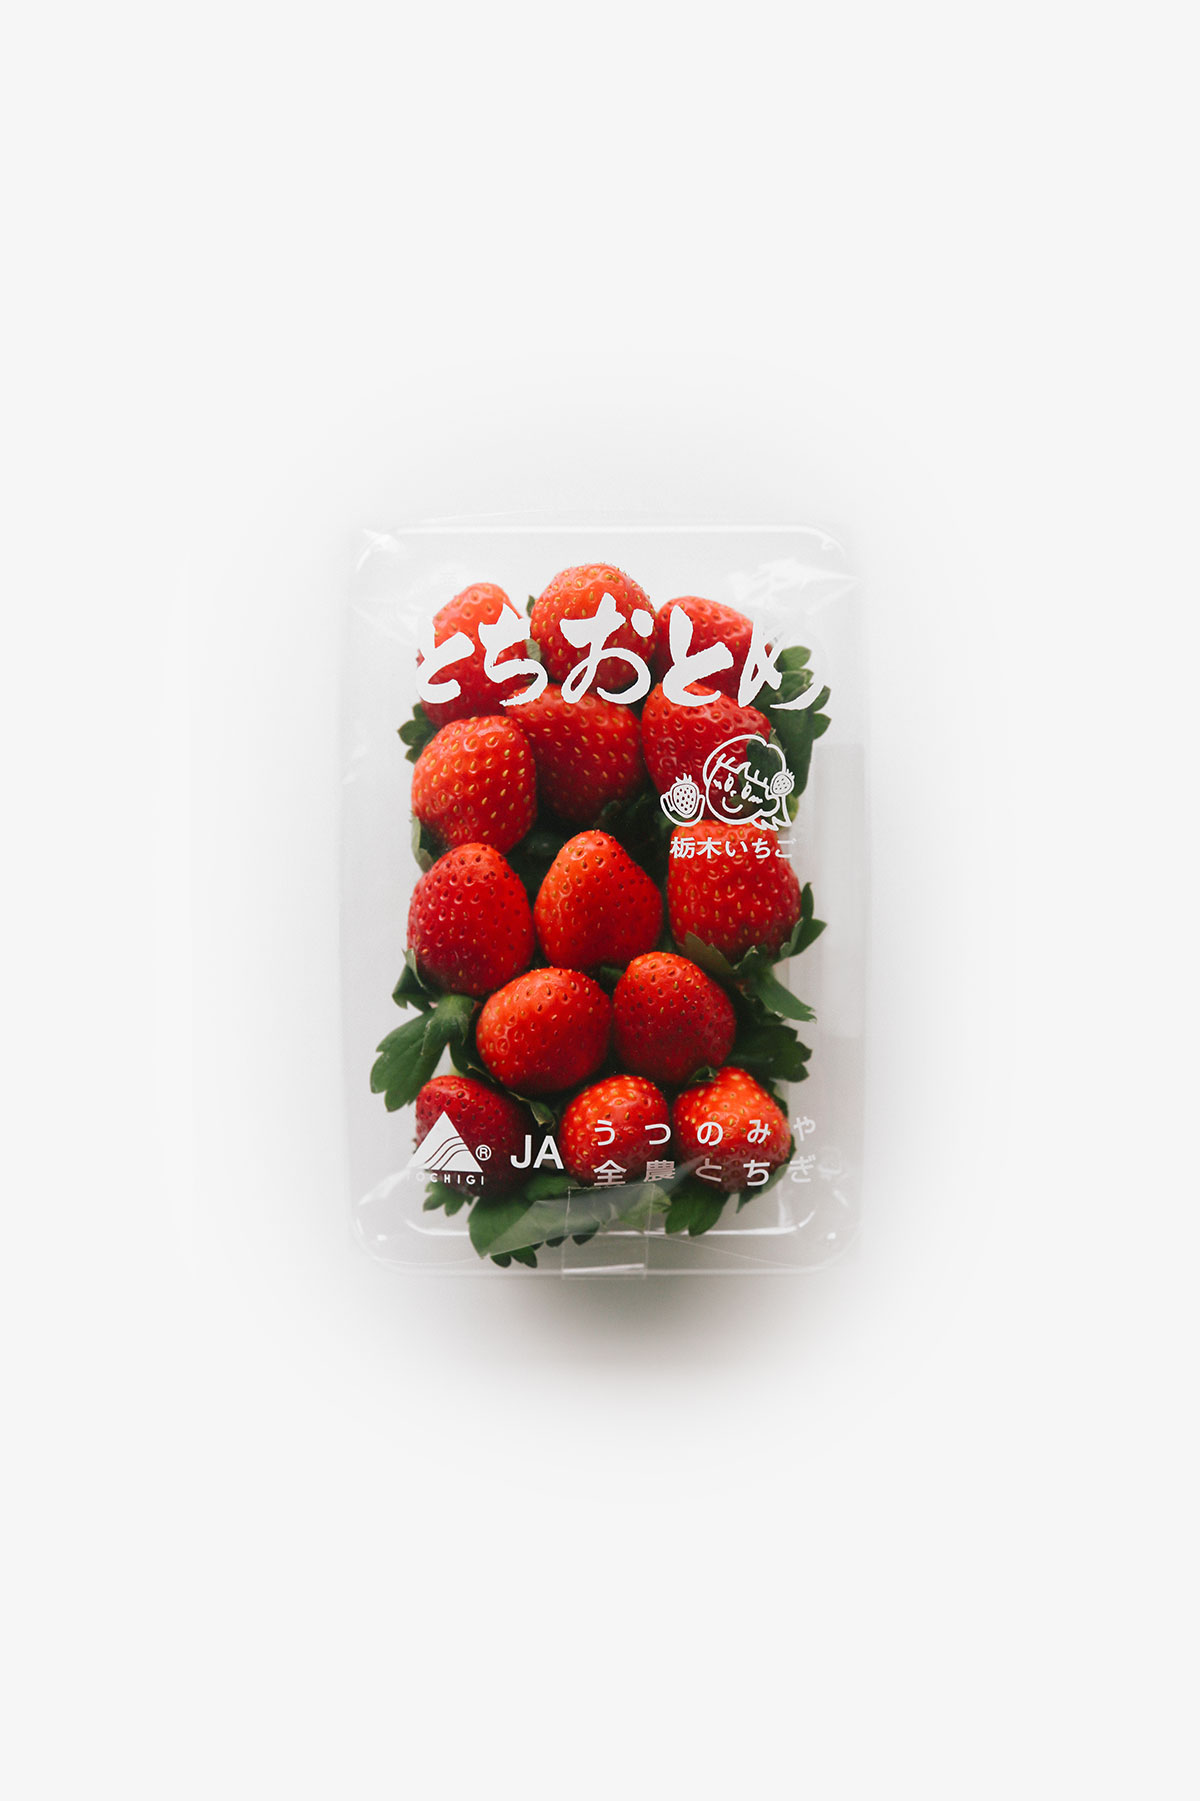 Keto Strawberries, a guide to keto foods for low carb. keto, keto ingredients, keto foods, keto produce, keto fruits, ketogenic diet, keto shopping list, low carb, low carb foods, low carb fruits, lchf, lchf foods, lchf fruit